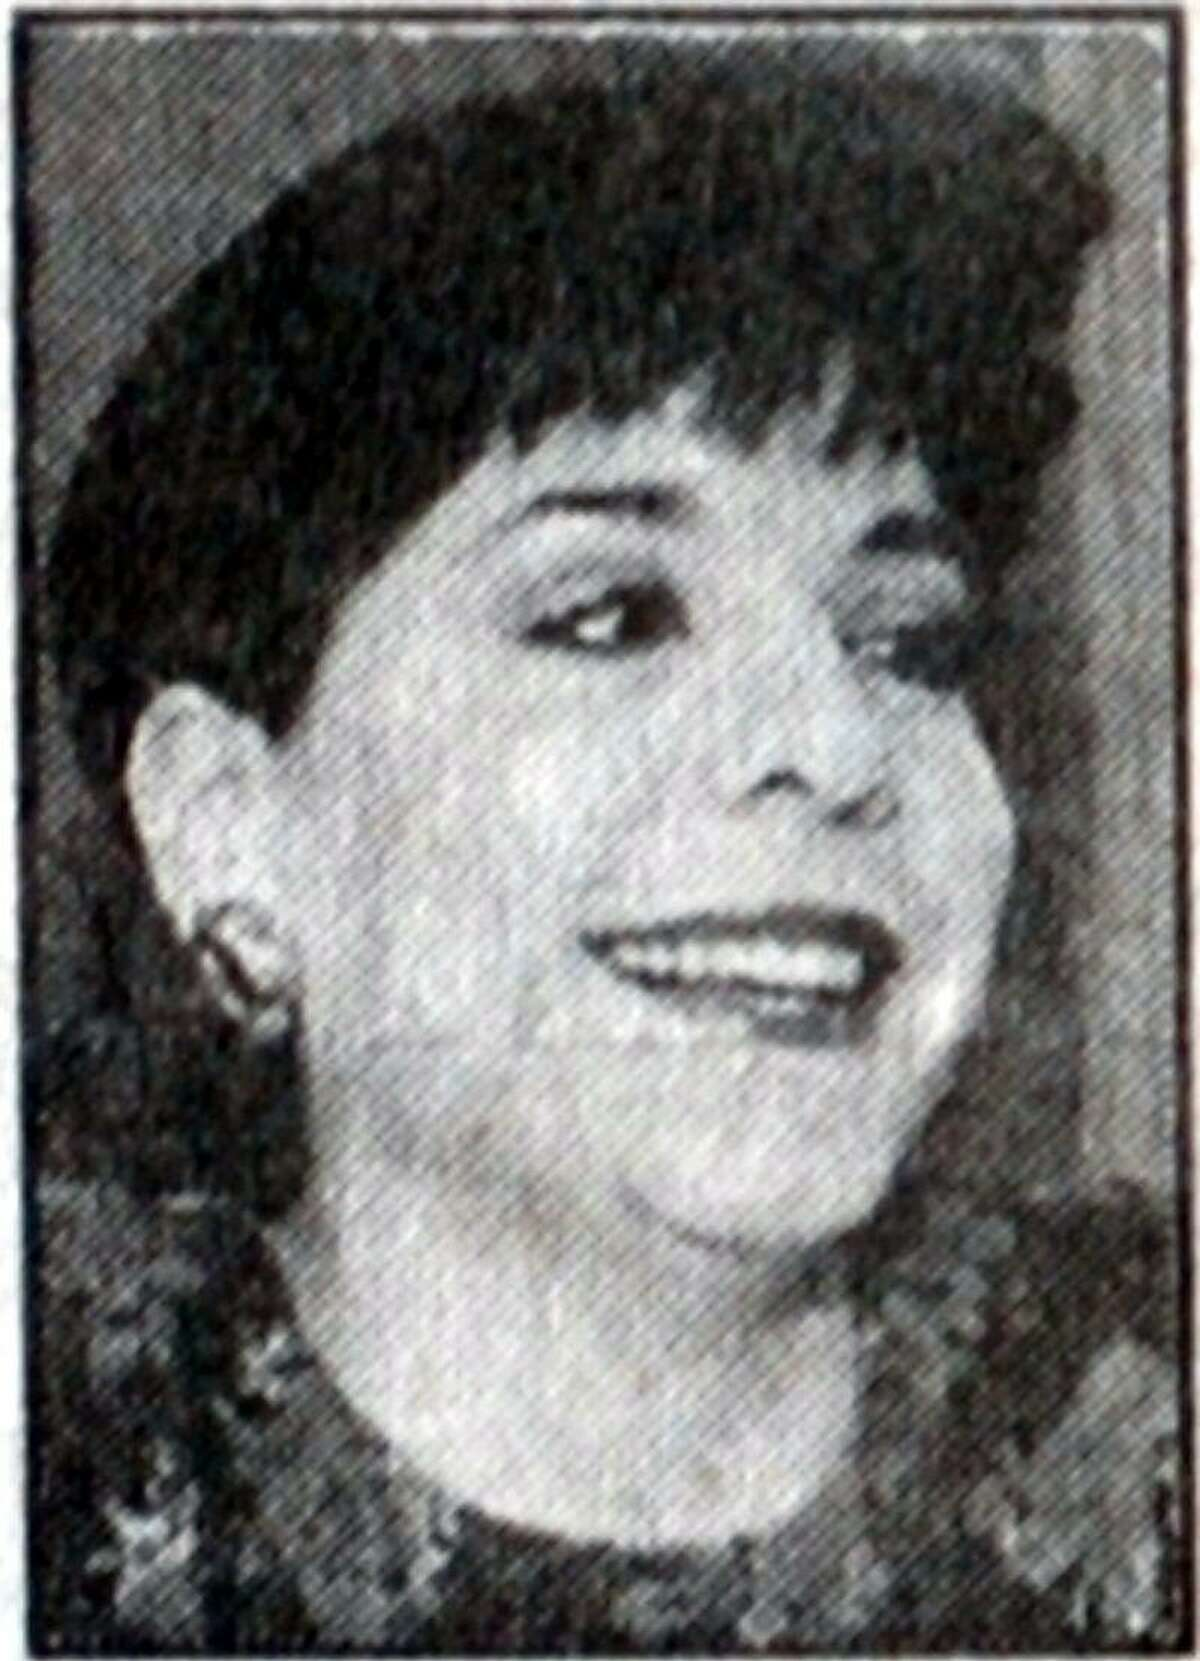 Mary Catherine Edwards was killed in beaumont in January, 1995. Enterprise file photo